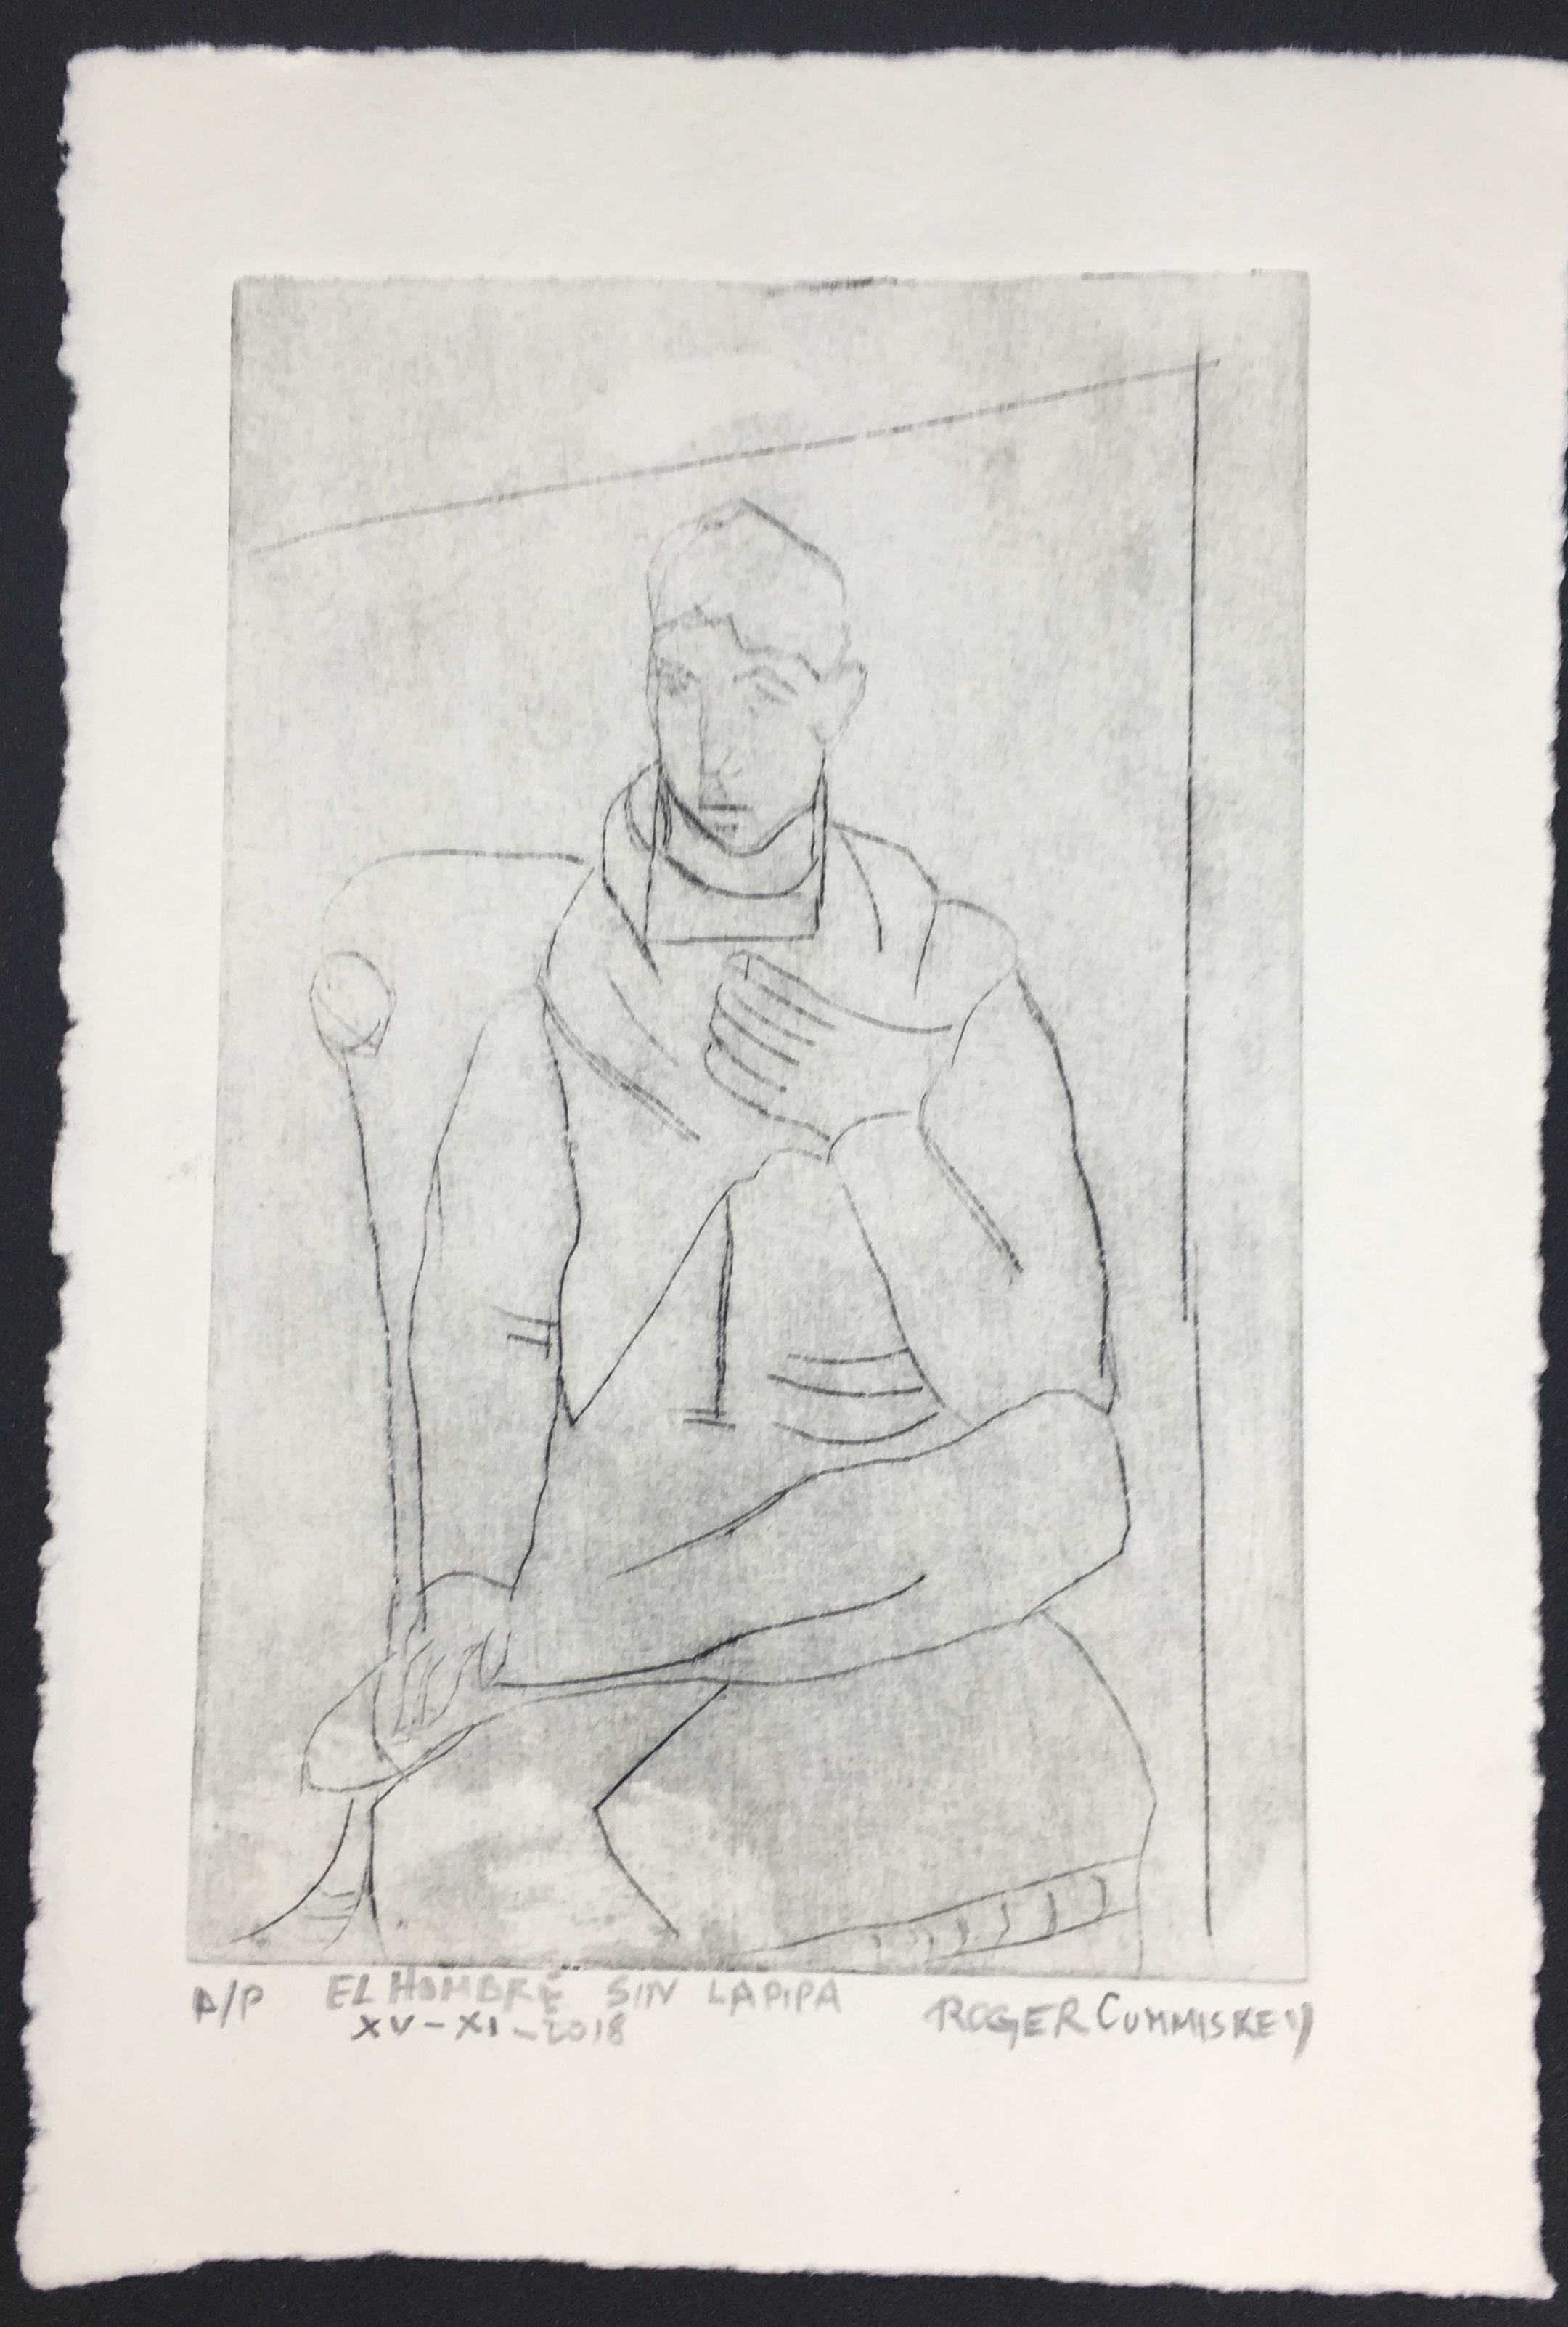 Le homme sin pipa, etching.